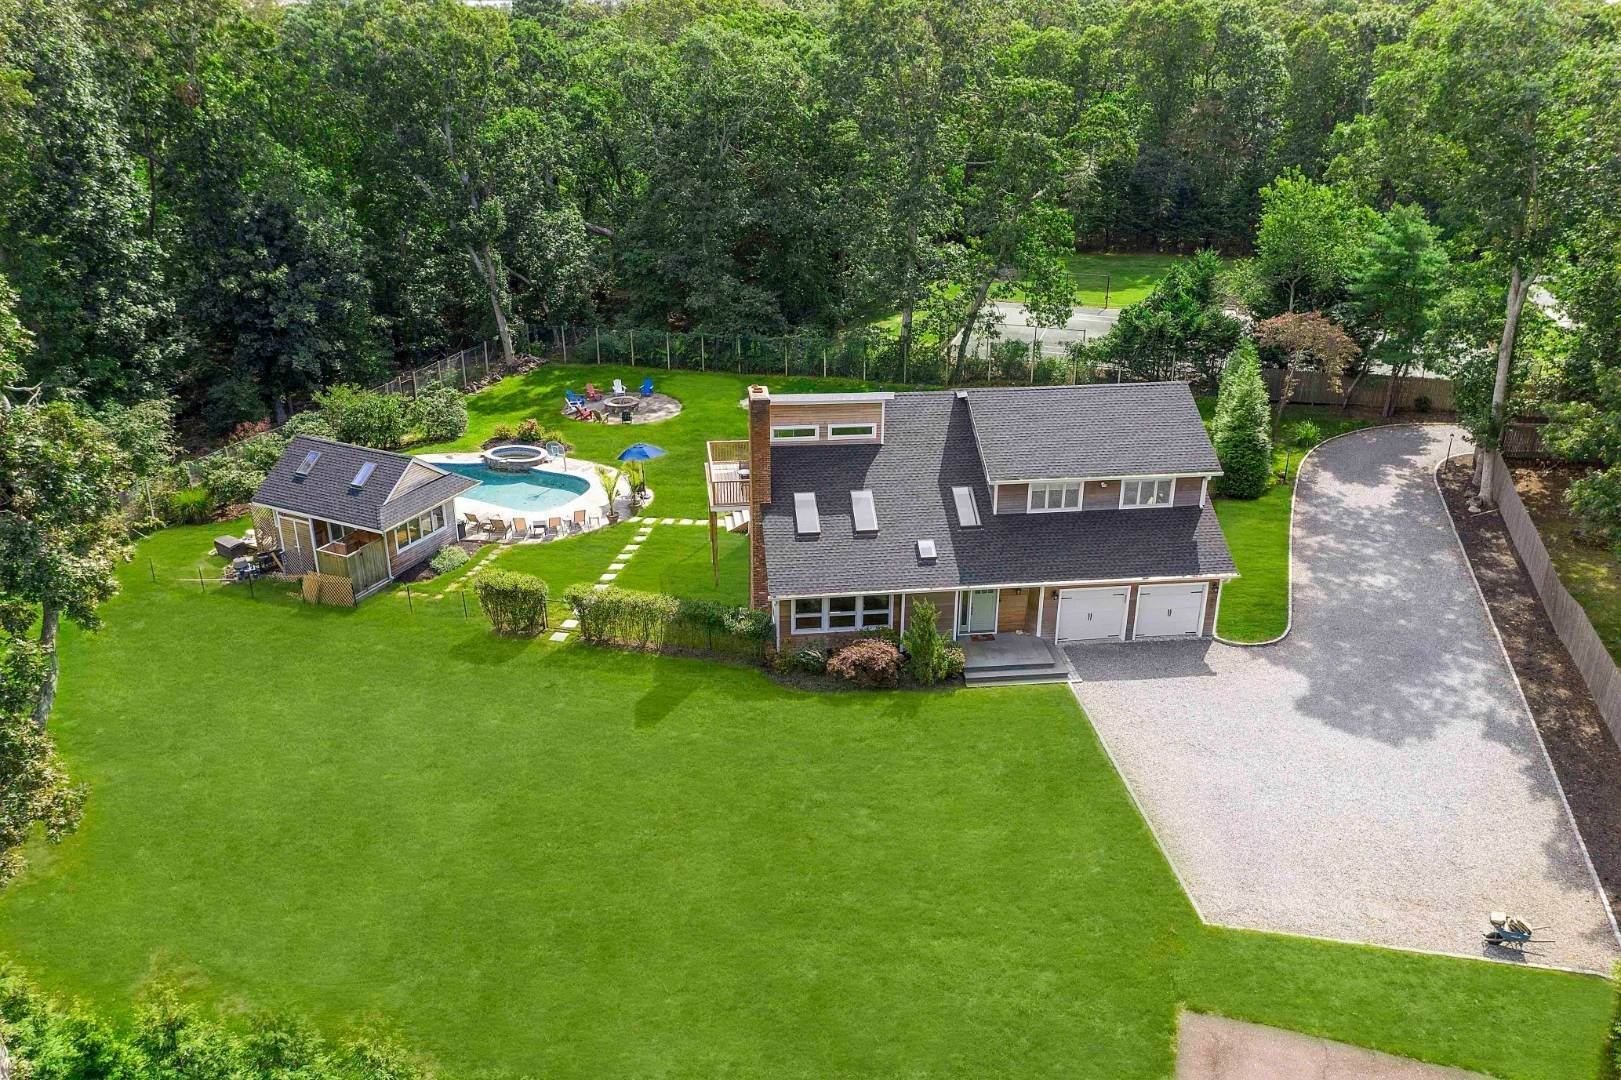 Single Family Home for Sale at Private Westhampton Compound On One Acre 44 Jagger Ln, Westhampton, NY 11977